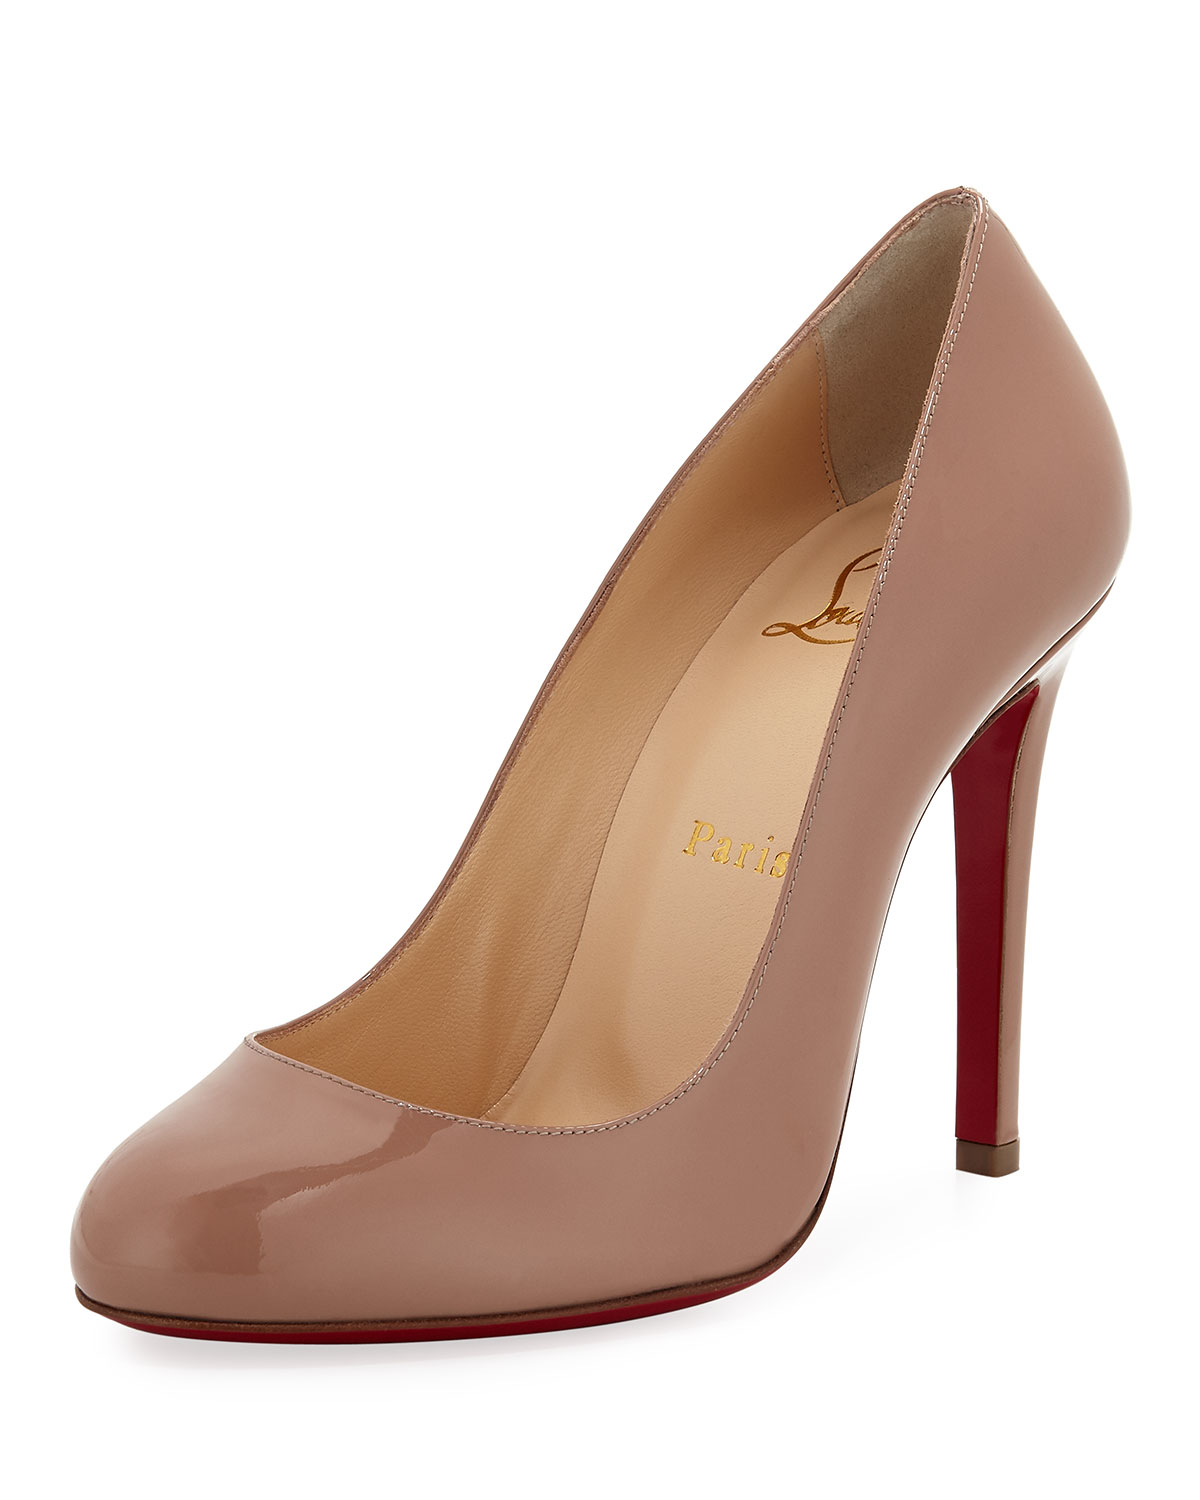 promo code 7d02d 60b6b Fifille Patent Red Sole Pump